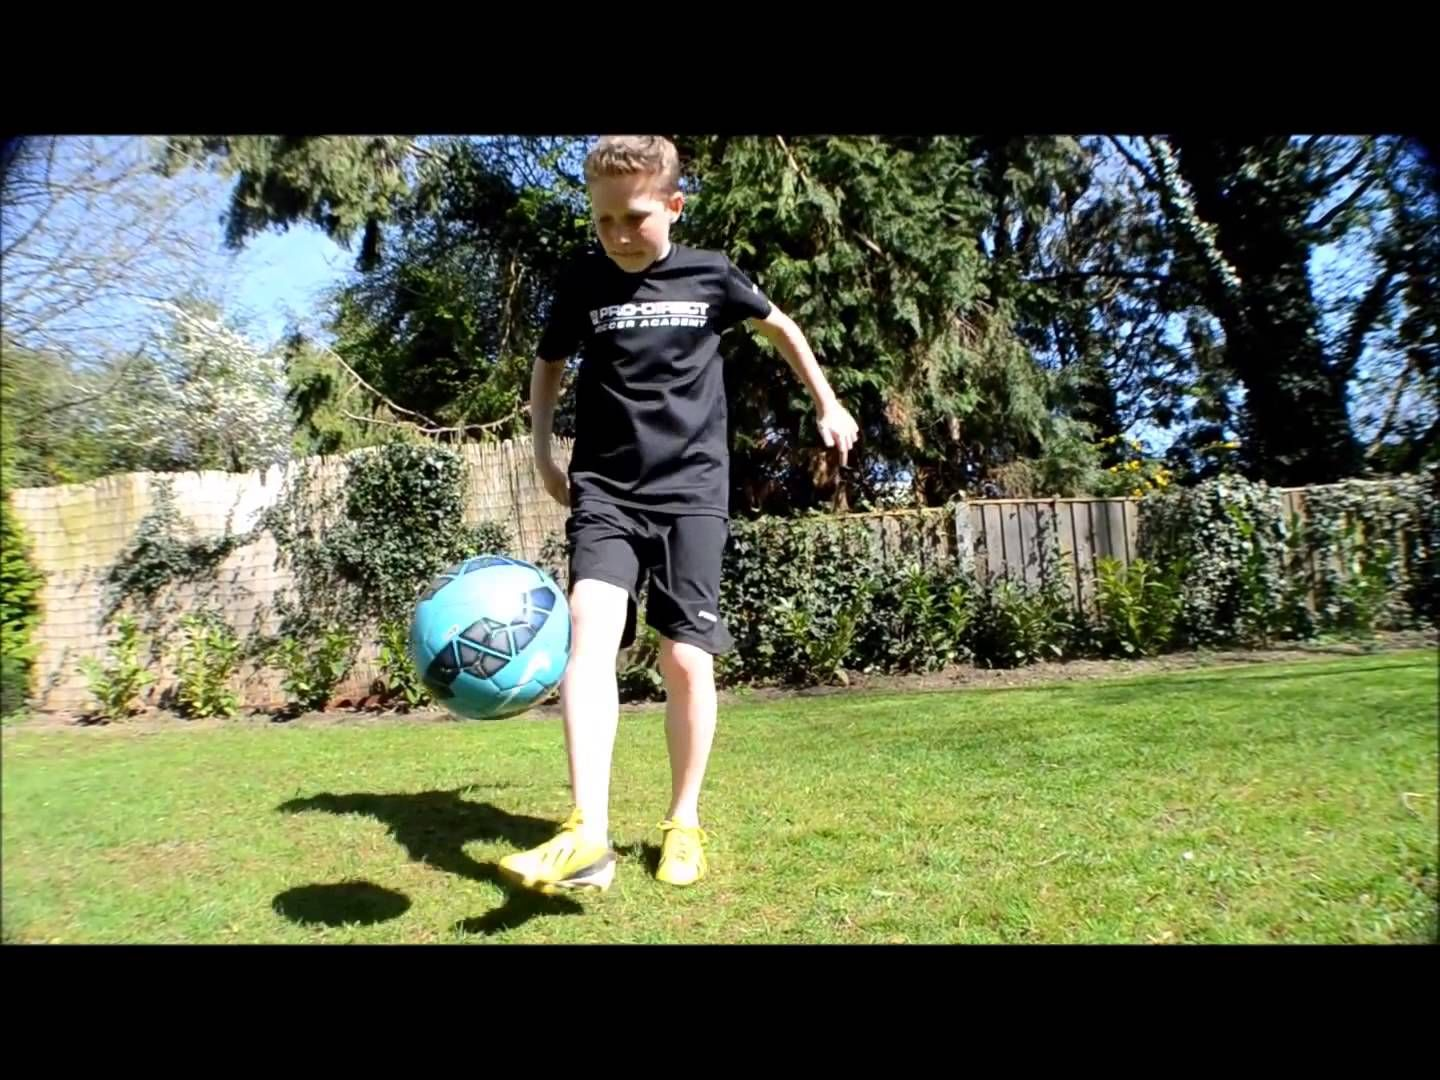 nice  #academy #dempsey #Football(Interest) #Freestyle #john #JohnDempsey #prodirect #soccer Pro-Direct Soccer Academy - John Dempsey Freestyle http://www.pagesoccer.com/pro-direct-soccer-academy-john-dempsey-freestyle/